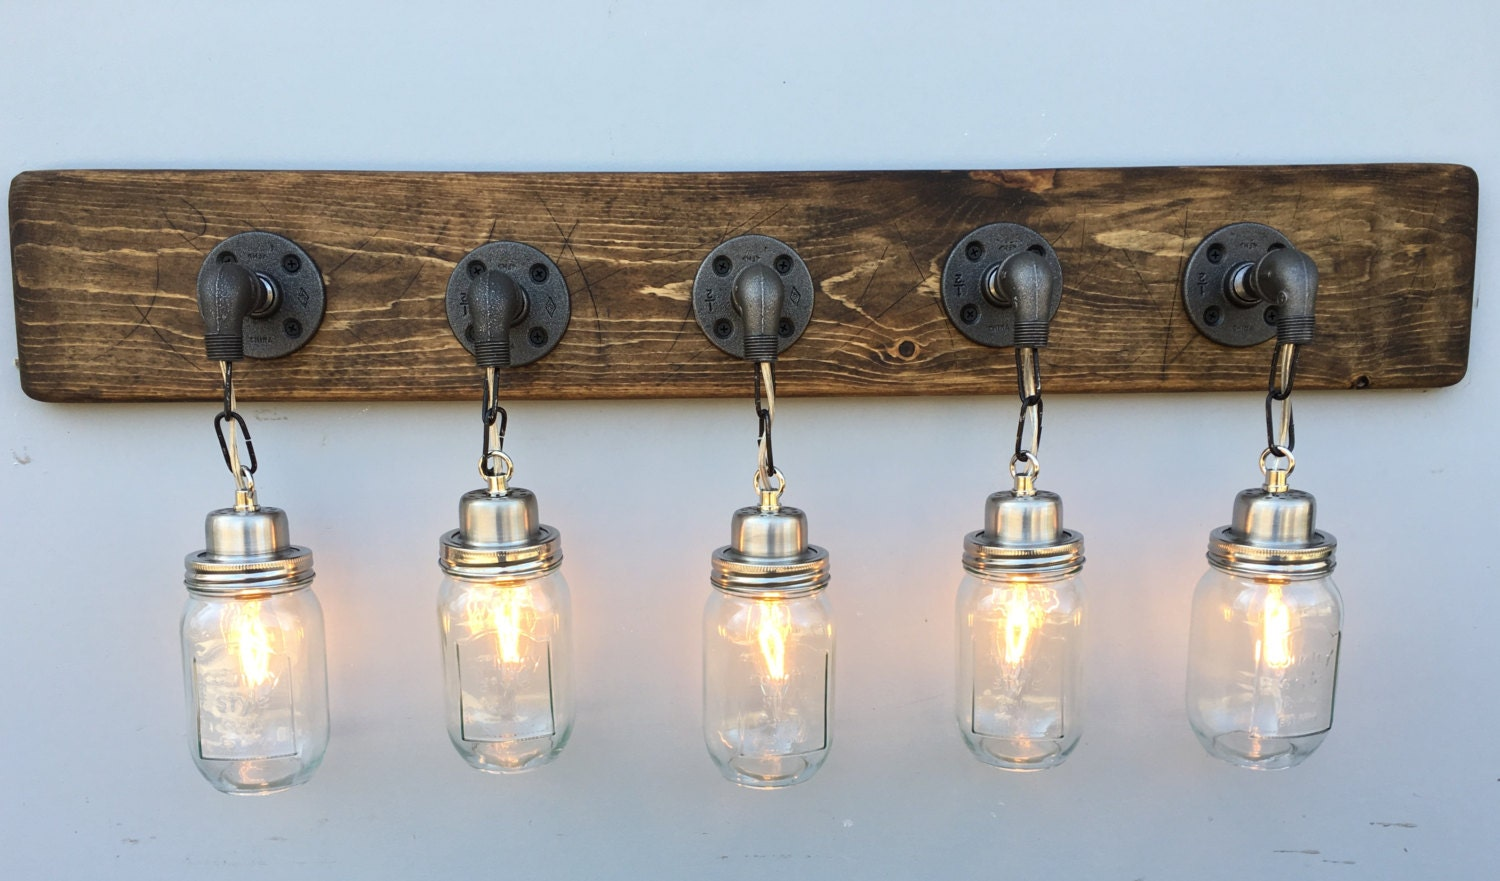 vanity light fixture 5 country style mason jar light by lightrooom. Black Bedroom Furniture Sets. Home Design Ideas